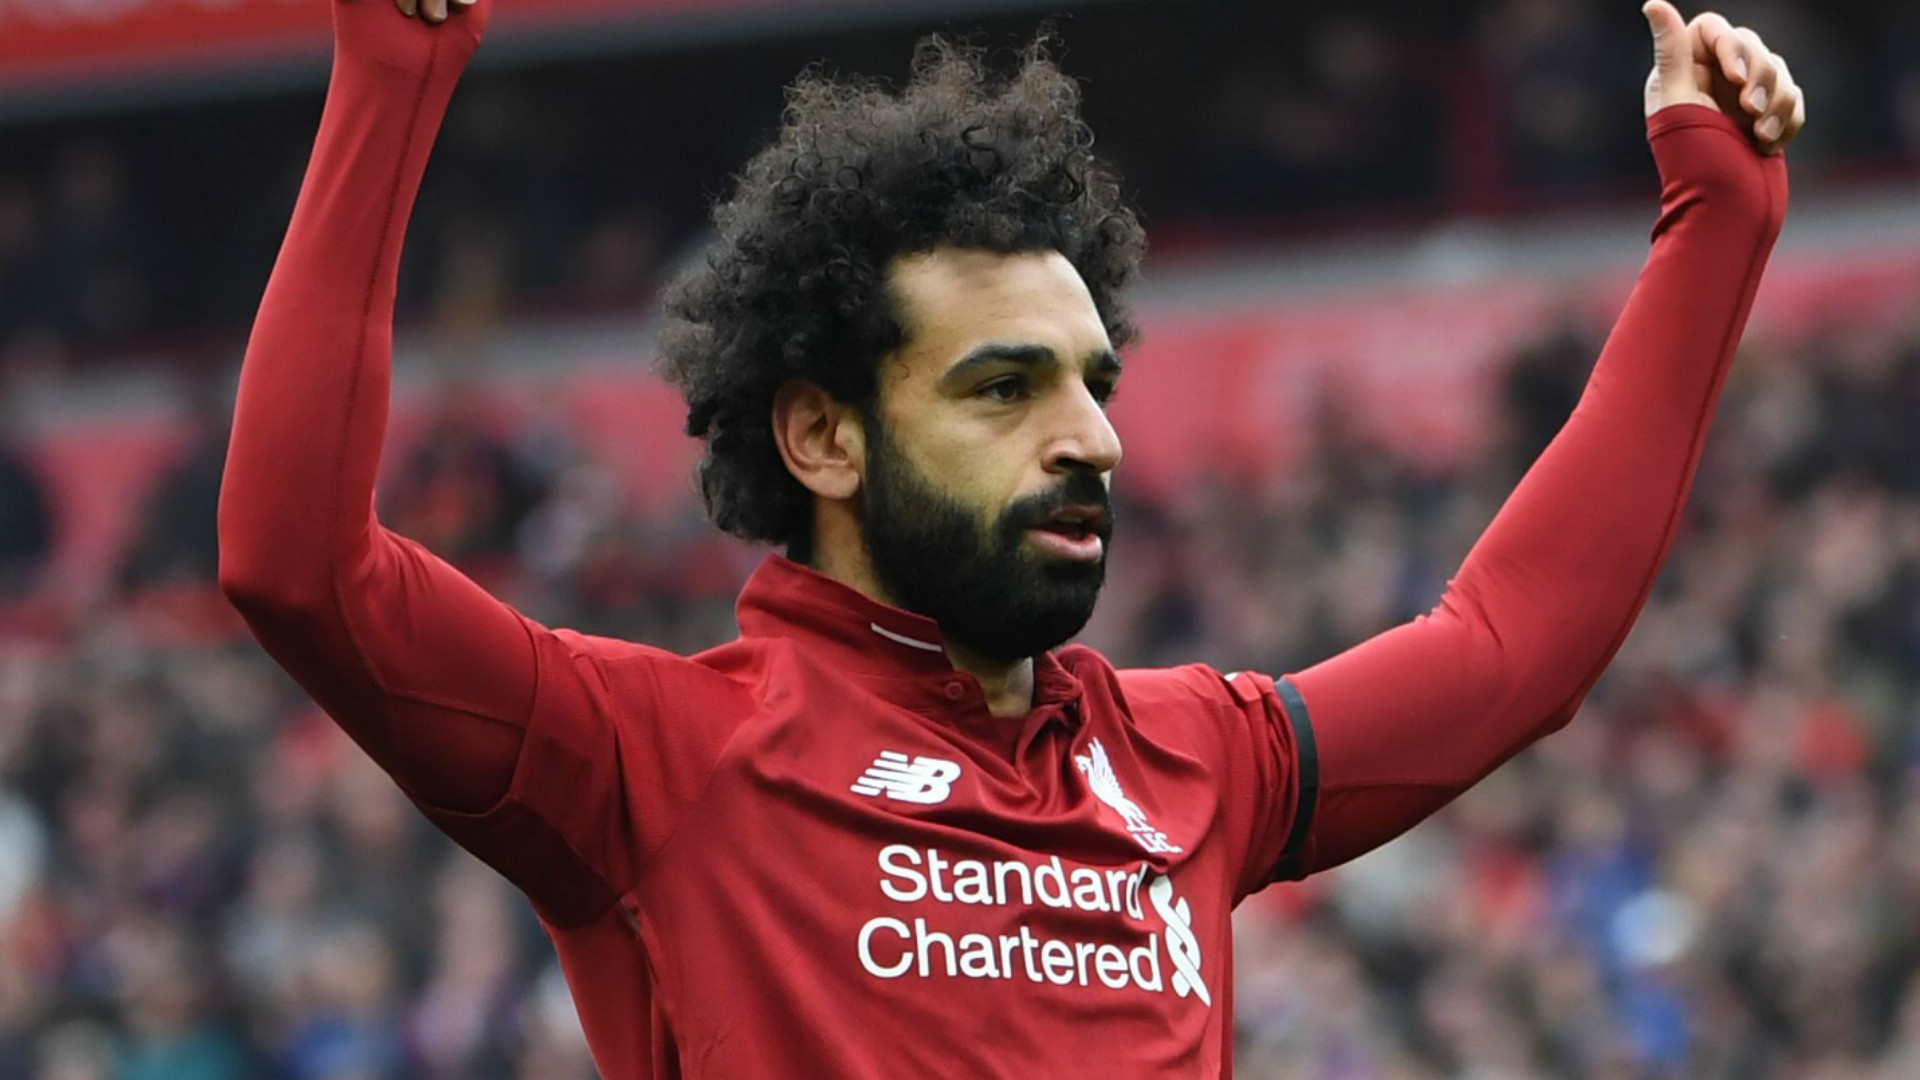 52ee19ea95b Transfer news and rumours LIVE: Salah asks Liverpool for summer move |  Goal.com